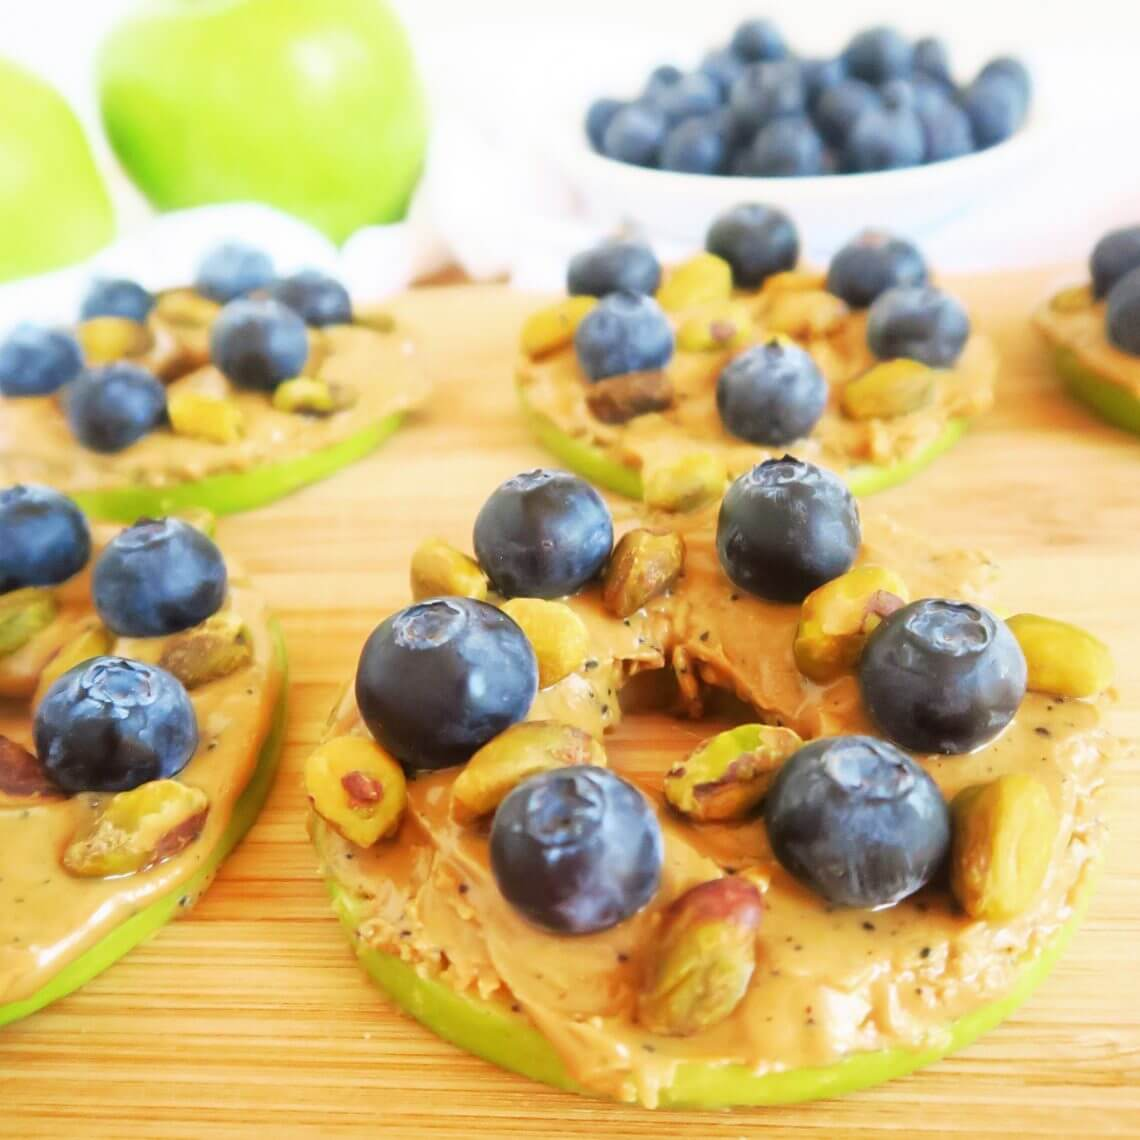 Apple Blueberry Sandwiches by Wholesum Yum Are your kids eating everything in sight? Our list of 17 Kid Approved Recipes will make you a hero. Tasty snacks and more. Yum!